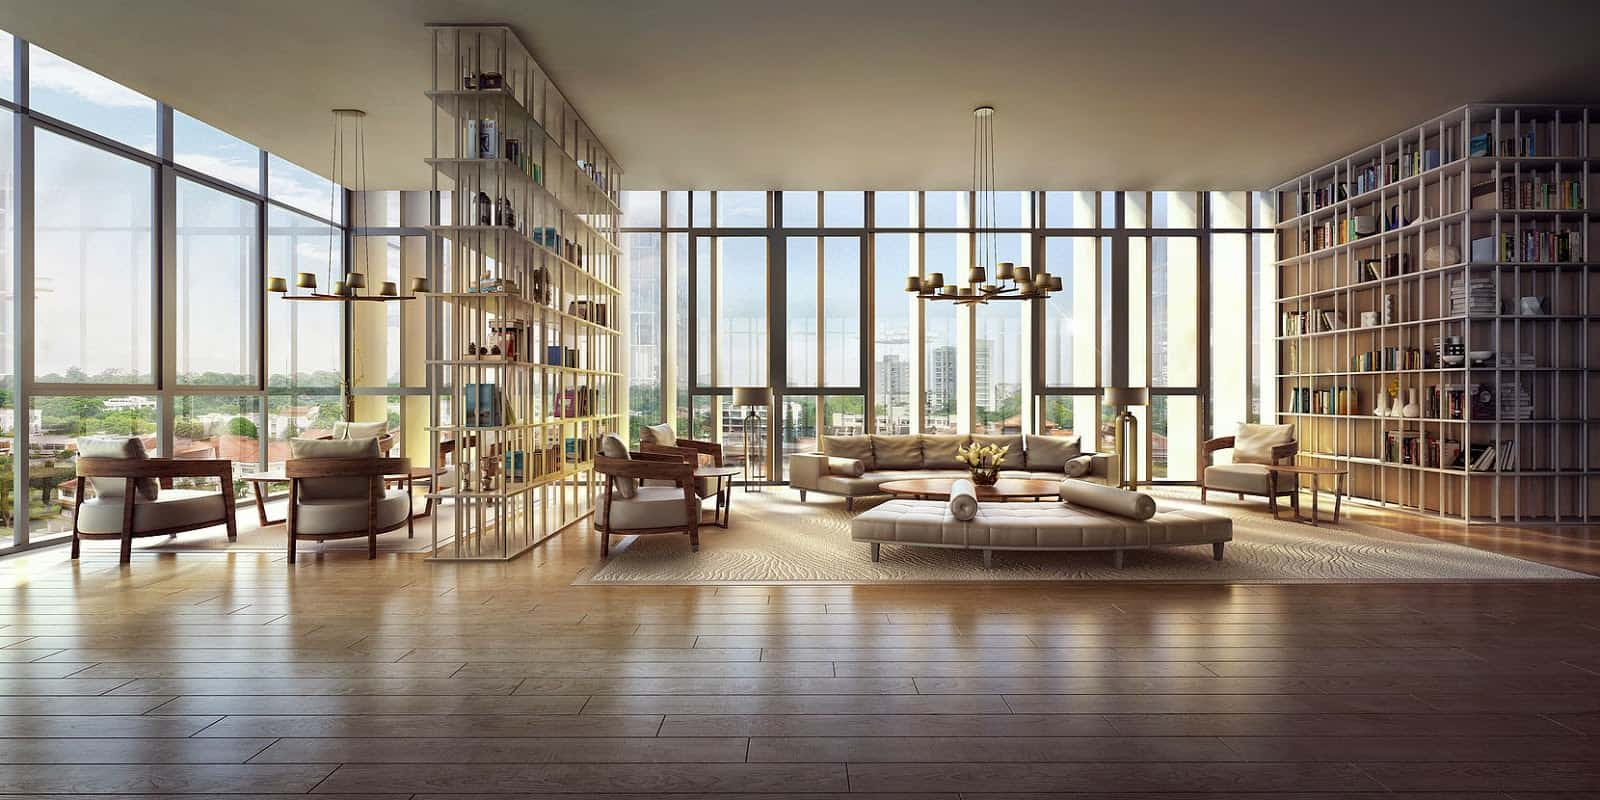 Robin Residences Clubhouse . Developed by Sing Holdings